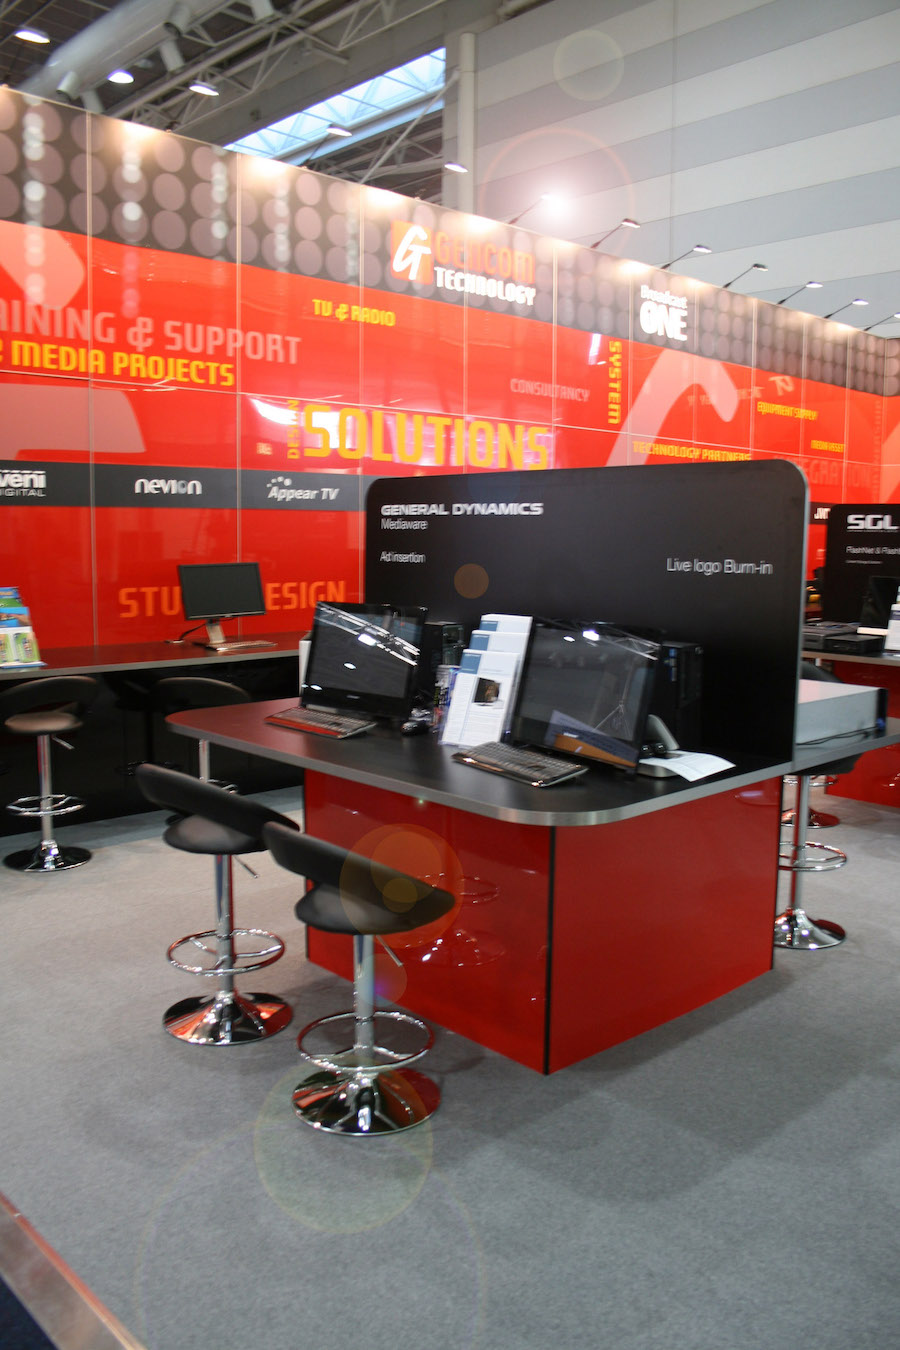 360-display-retail-expo-systems-stands-hire-designers-sydney-melbourne-newcastle-gold-coast-brisbane-Gencom-4.jpg